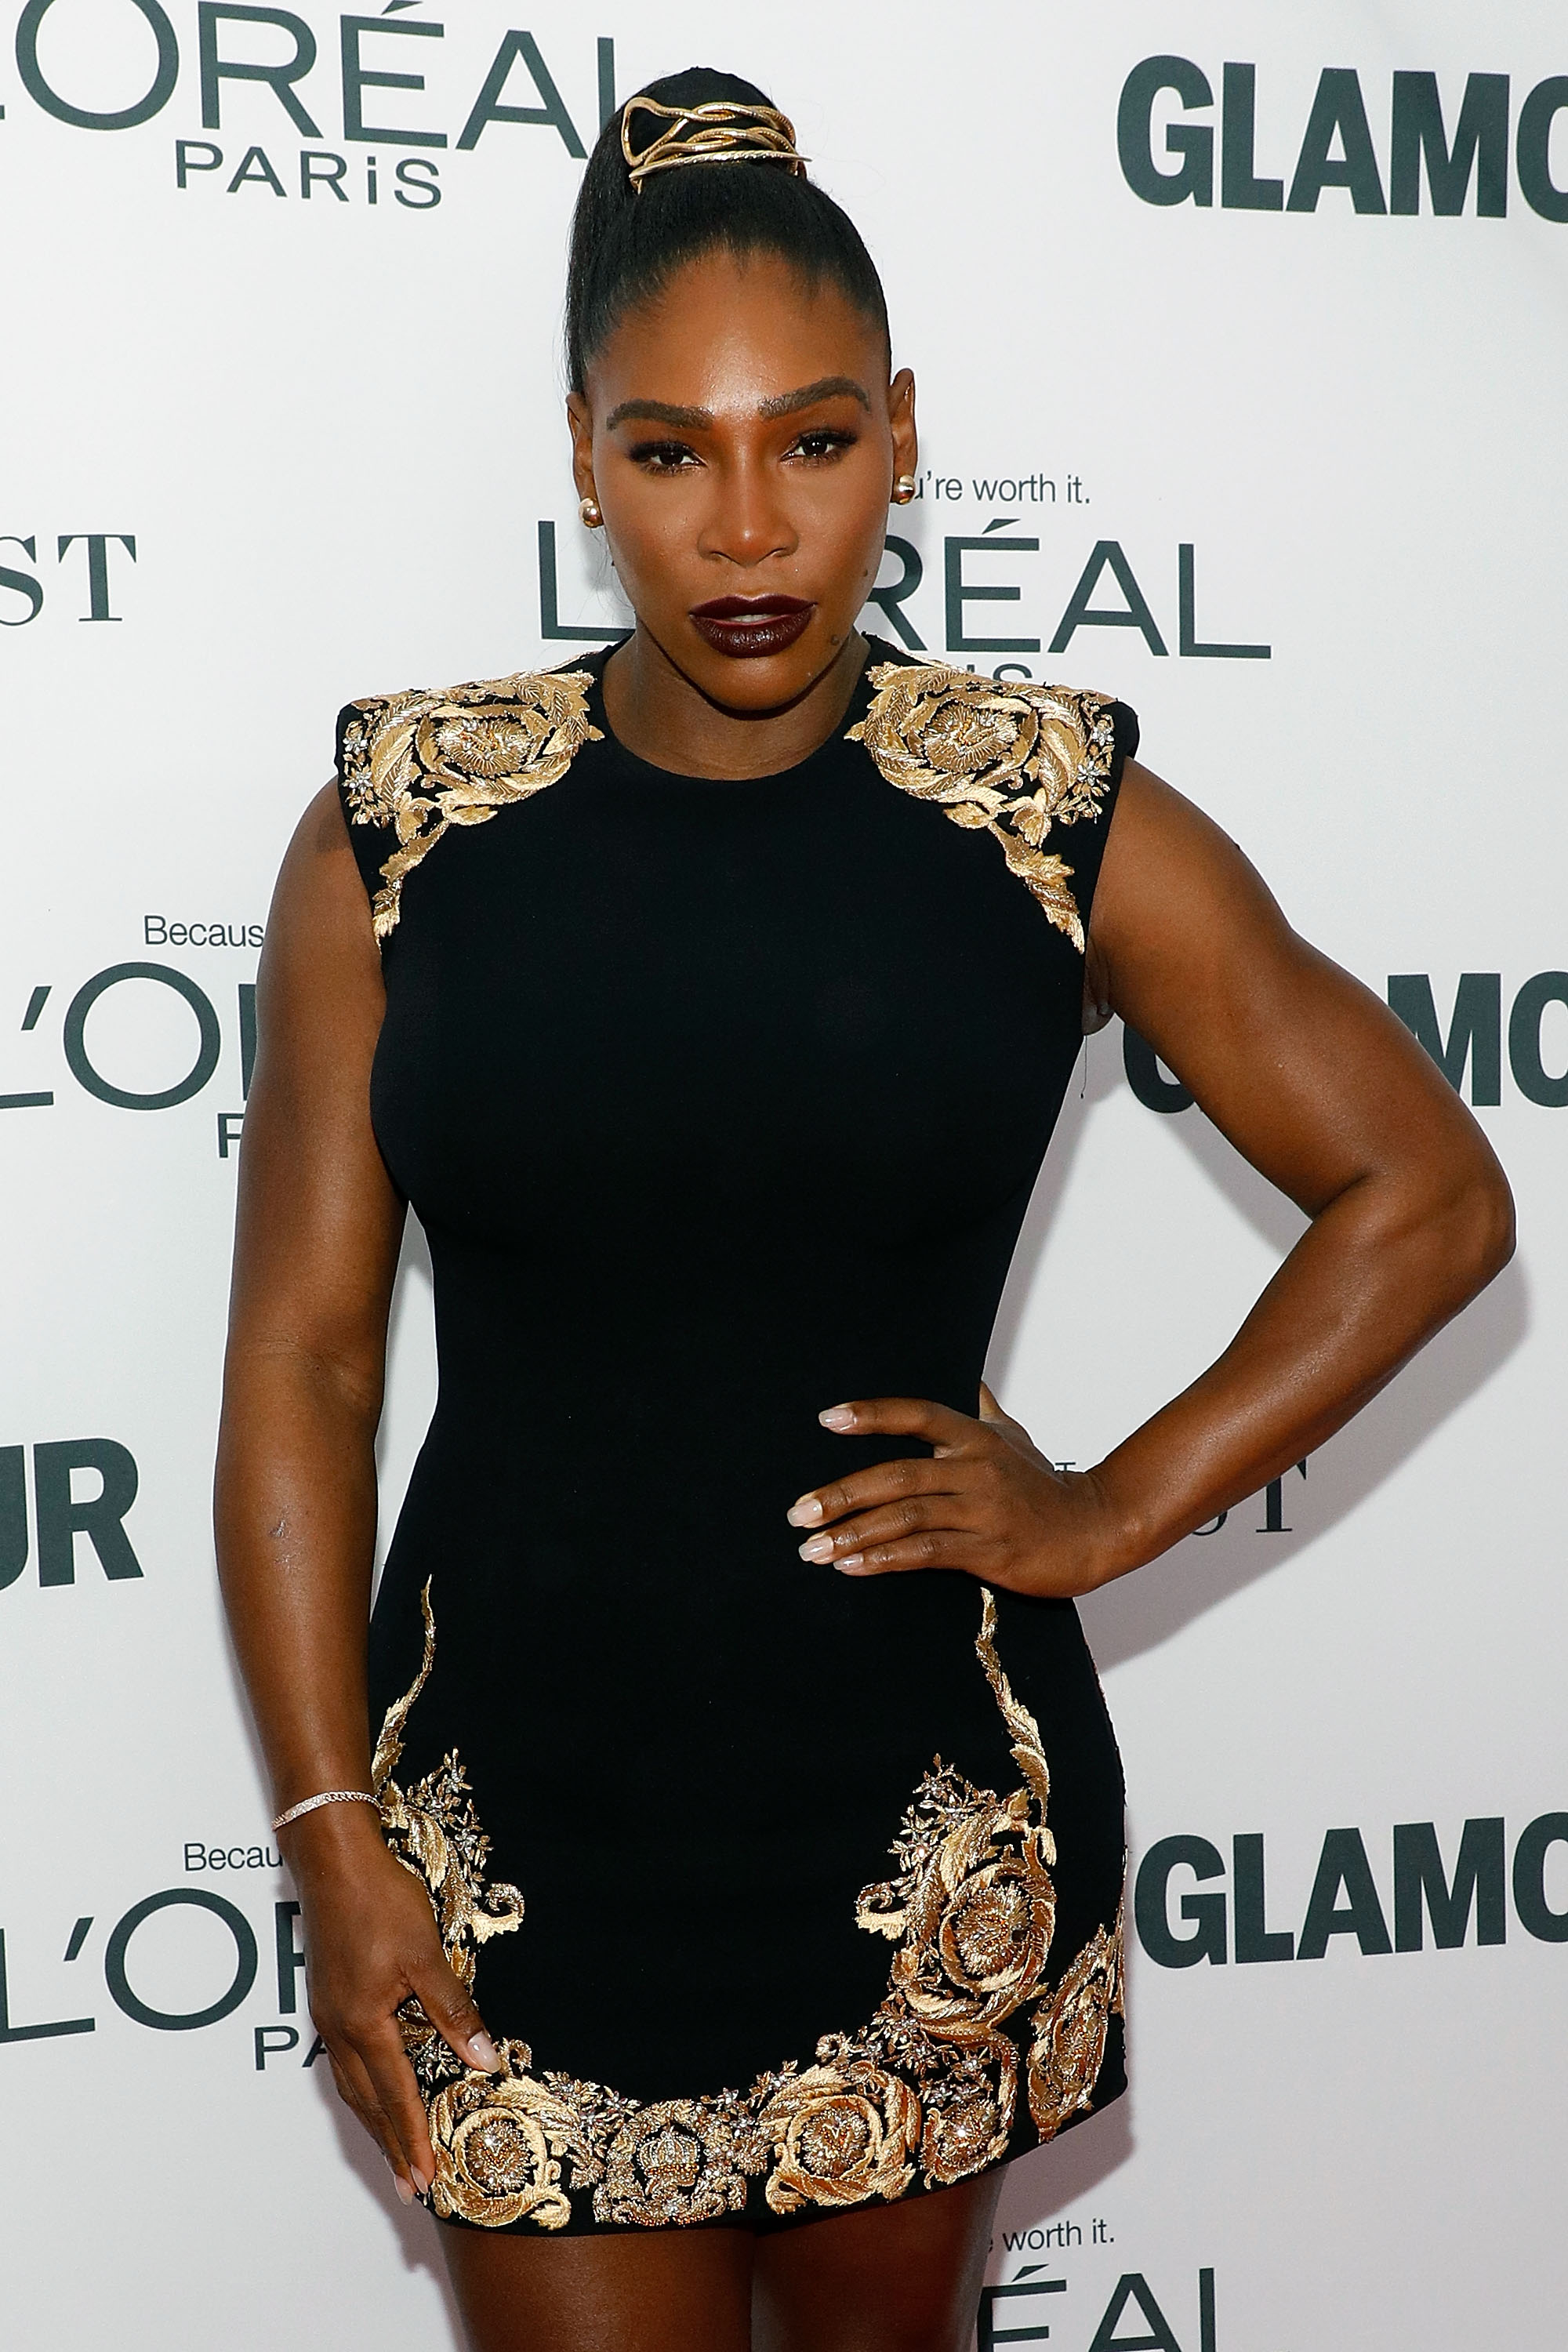 """As the winner of 38 major tennis titles and 23 grand slam singles titles, Serena Williams, is intimidating enough. Now, the tennis champ has given us another reason to question our life choices with news that she is reportedly set to release her own beauty line.<br /> <br /> The 33-year-old has taken her first steps towards global beauty domination by trademarking the name 'Aneres' (Serena spelt backwards) for a cosmetics line, according to <em><a href=""""http://www.tmz.com/2018/03/12/serena-williams-files-trademark-cosmetics-line/"""" target=""""_blank"""" draggable=""""false"""">TMZ.</a></em><br /> <br /> Although the range has yet to be officially announced, the mother-of-one is allegedly planning on dipping her manicured hands into everything from skincare to makeup and even fragrances and haircare.<br /> <br /> The all-star athlete will join an elite club of celebrities that have created their own beauty brands. <br /> <br /> Kylie Jenner, Drew Barrymore, Miranda Kerr and Rihanna are just some of the A-listers that have used their high-profile, image and love of beauty to cash in at the make up counter over the last few years.<br /> <br /> Click through to see the beauty brands created by some of the world's most stylish celebrities.<br /> <br />"""